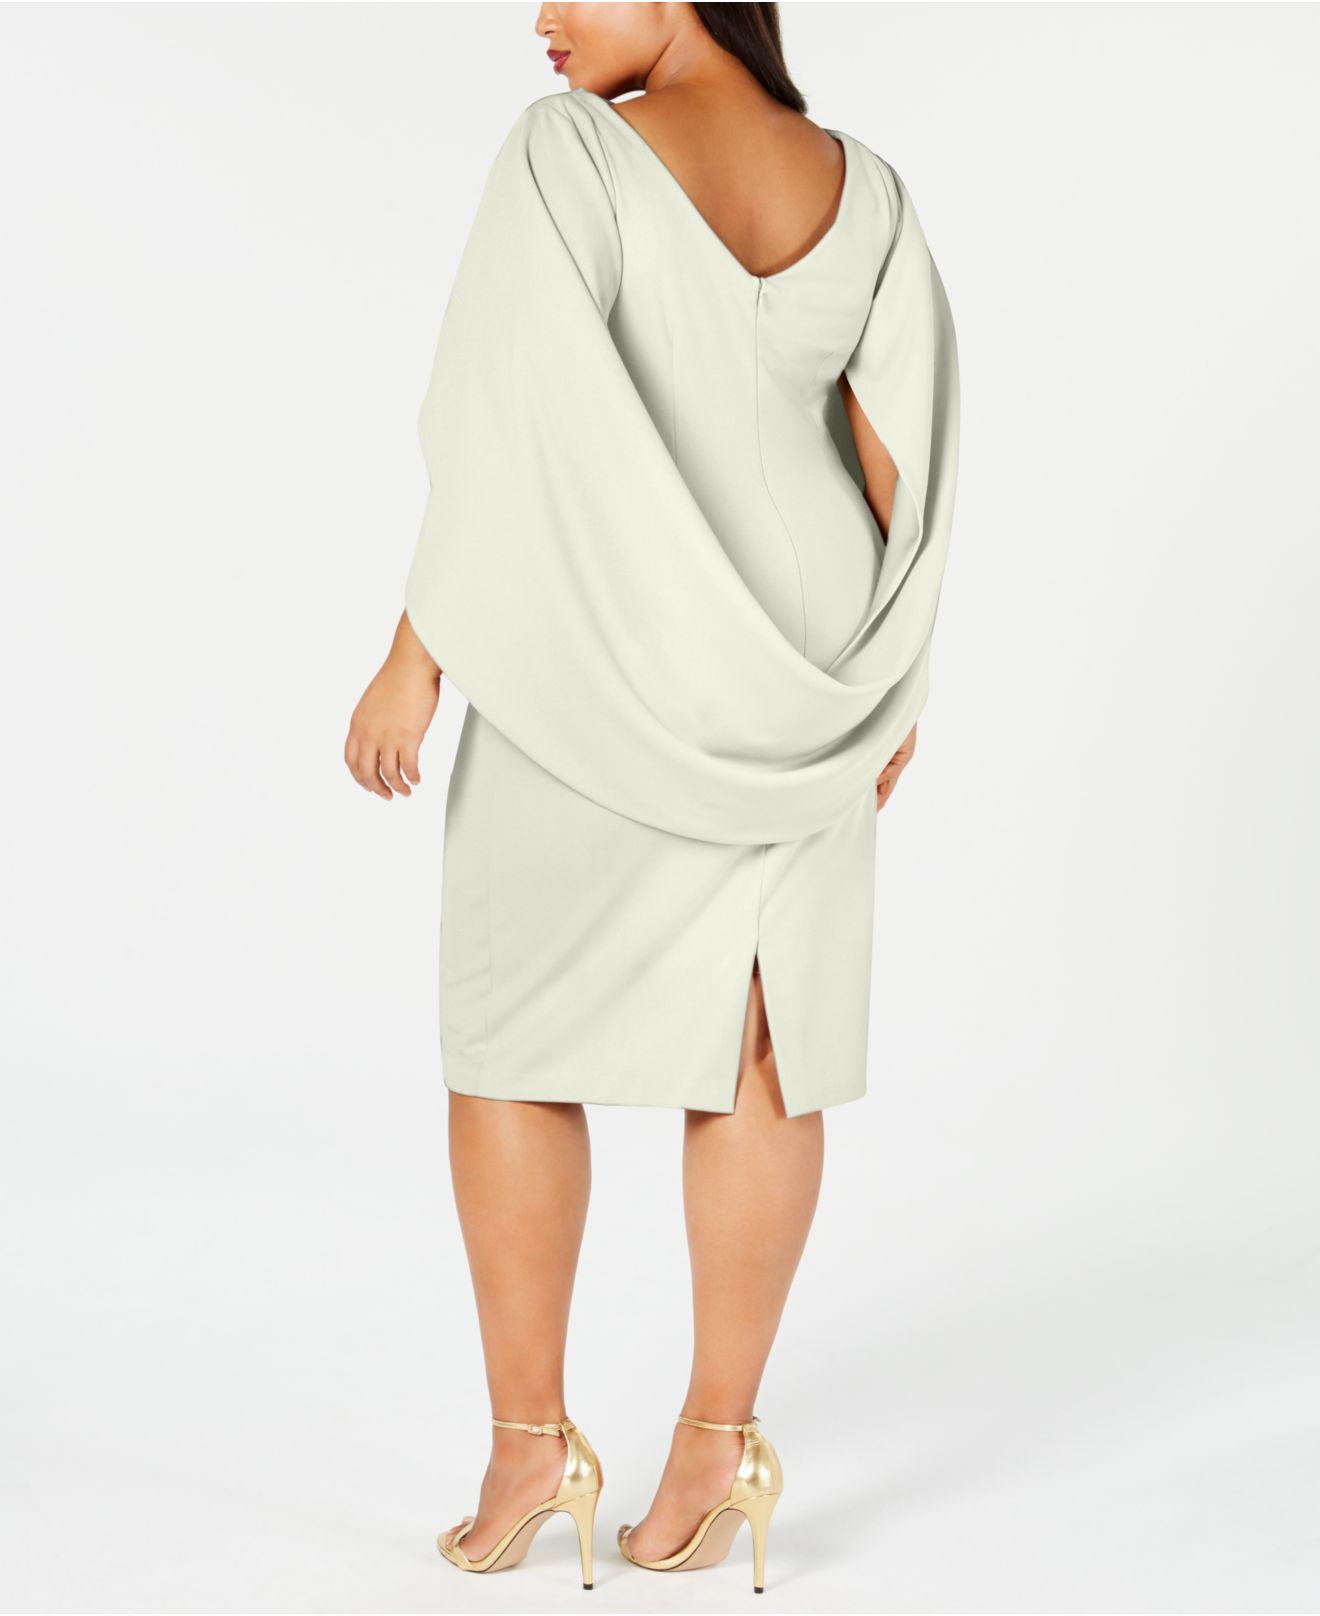 dd8baee241a Betsy   Adam Plus Size Ruched Cape Dress in White - Lyst